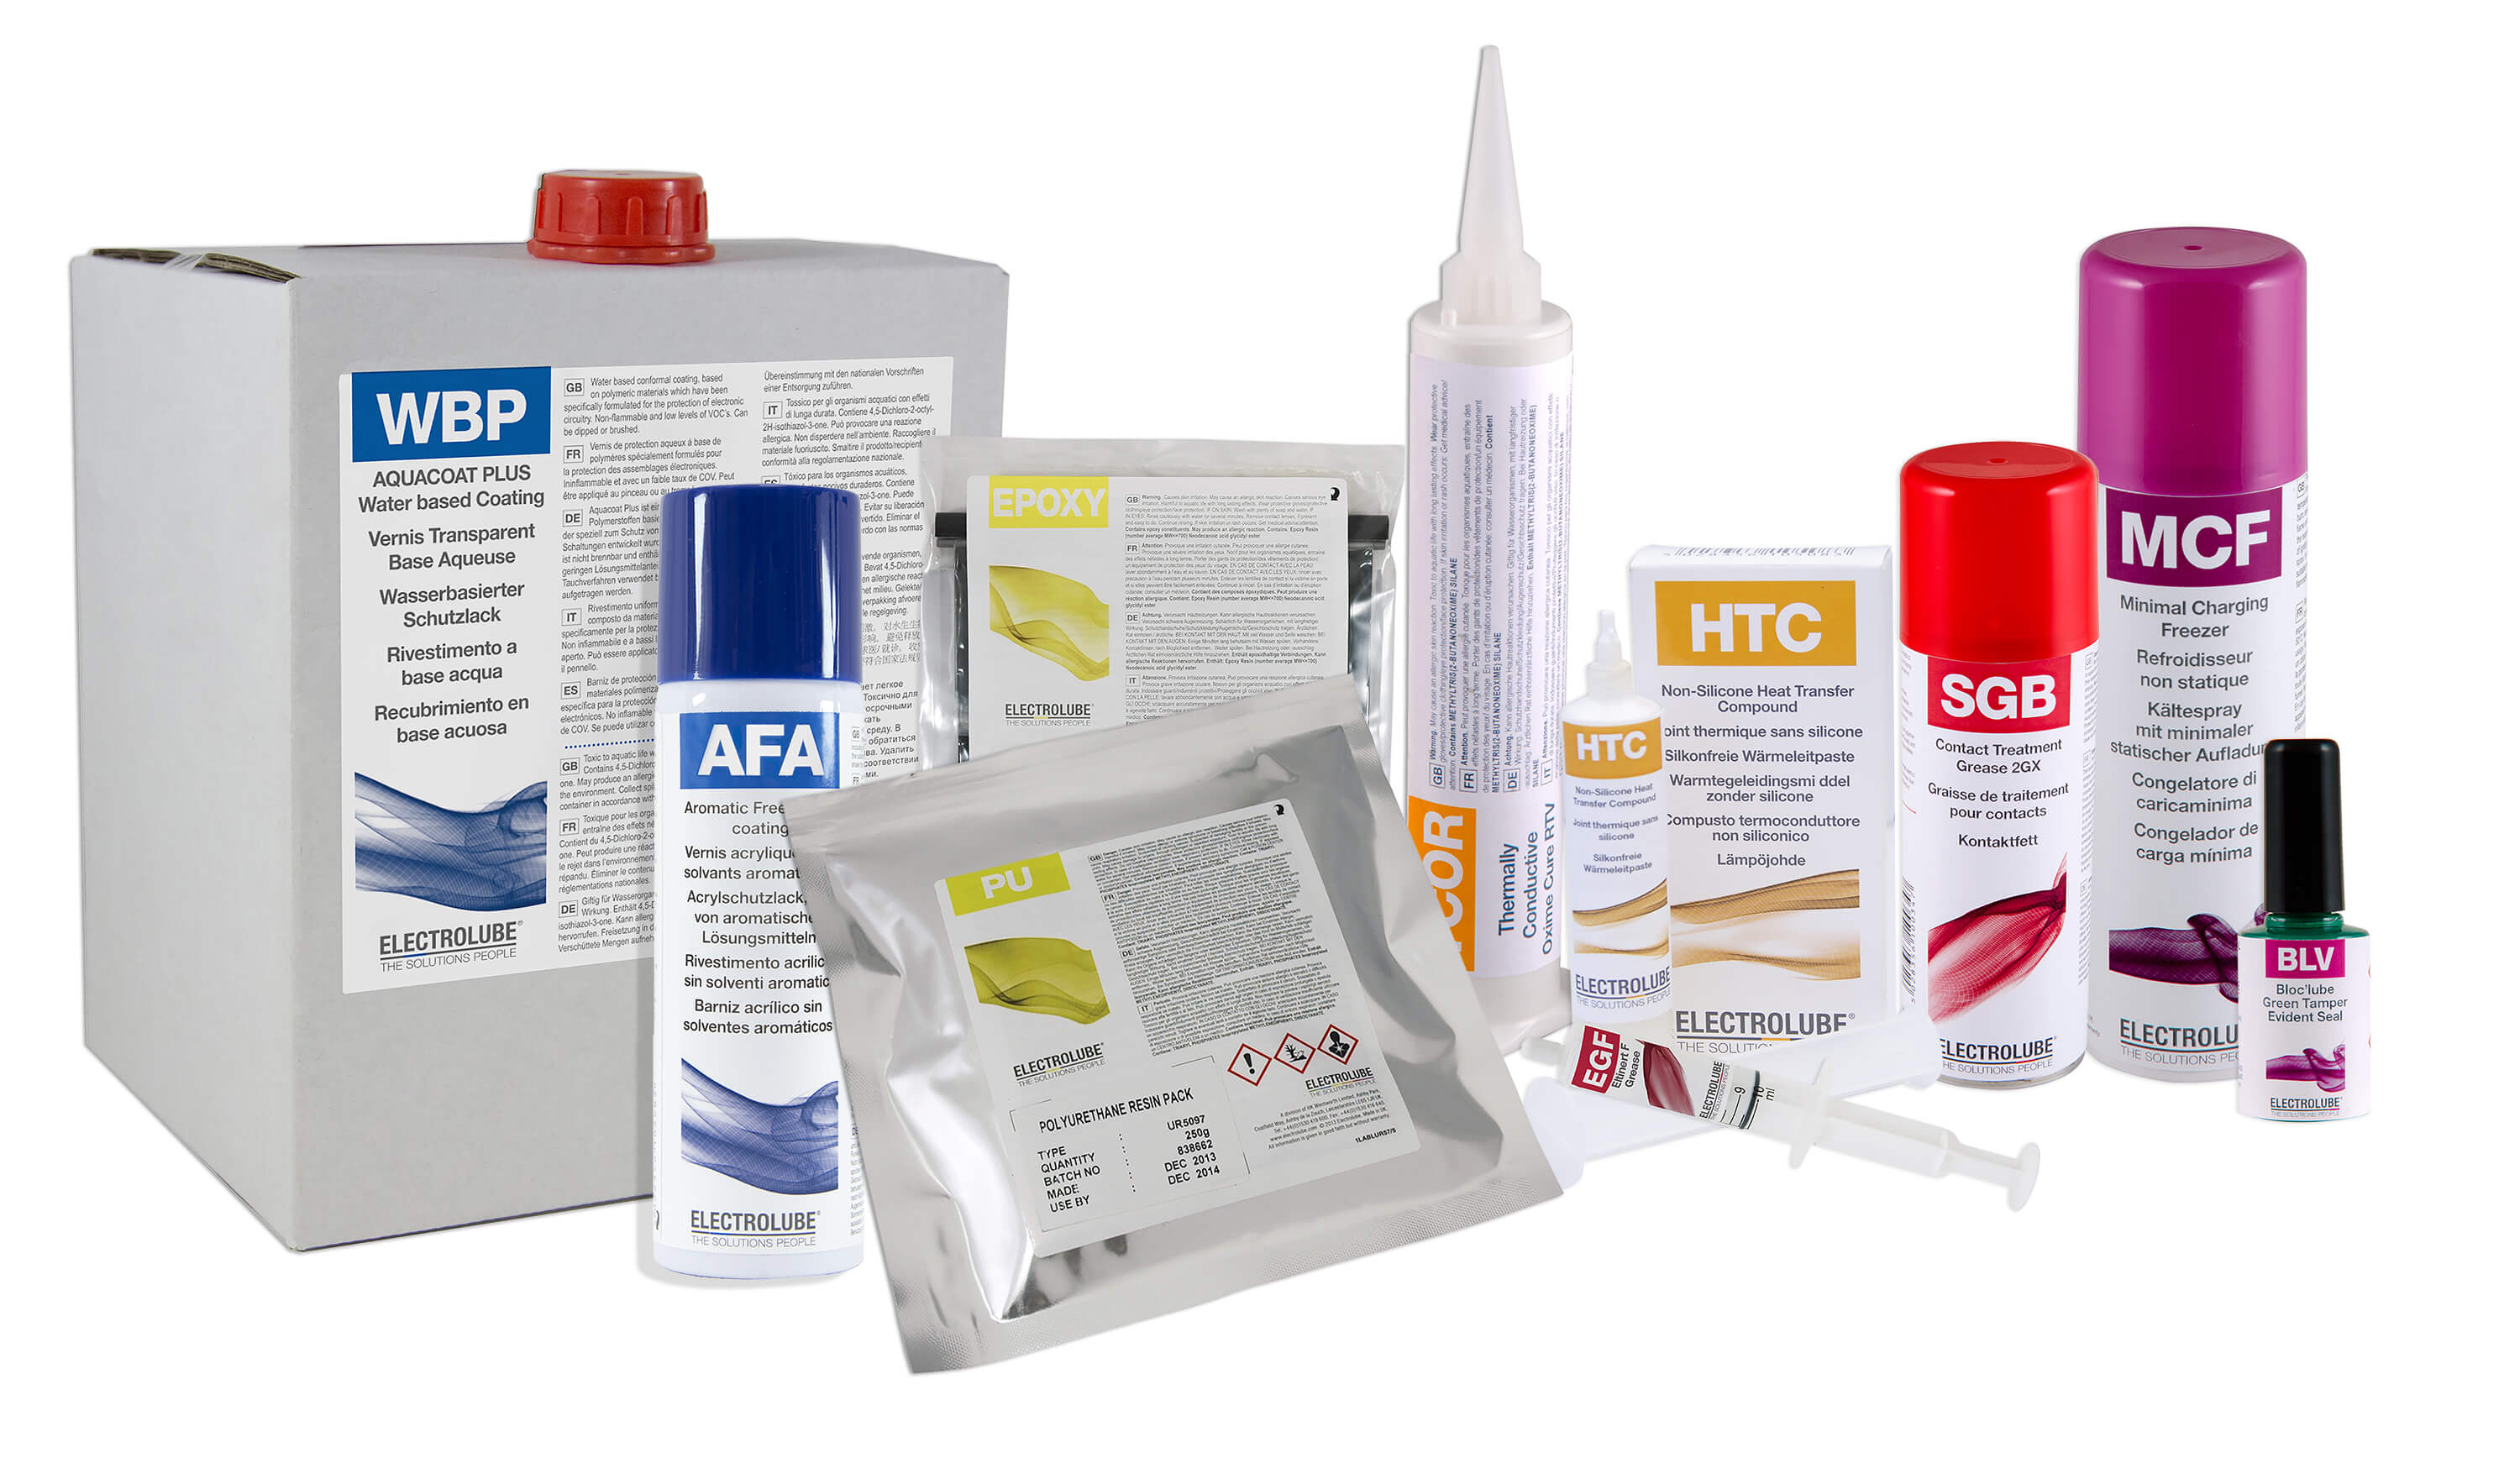 Electrolube Products